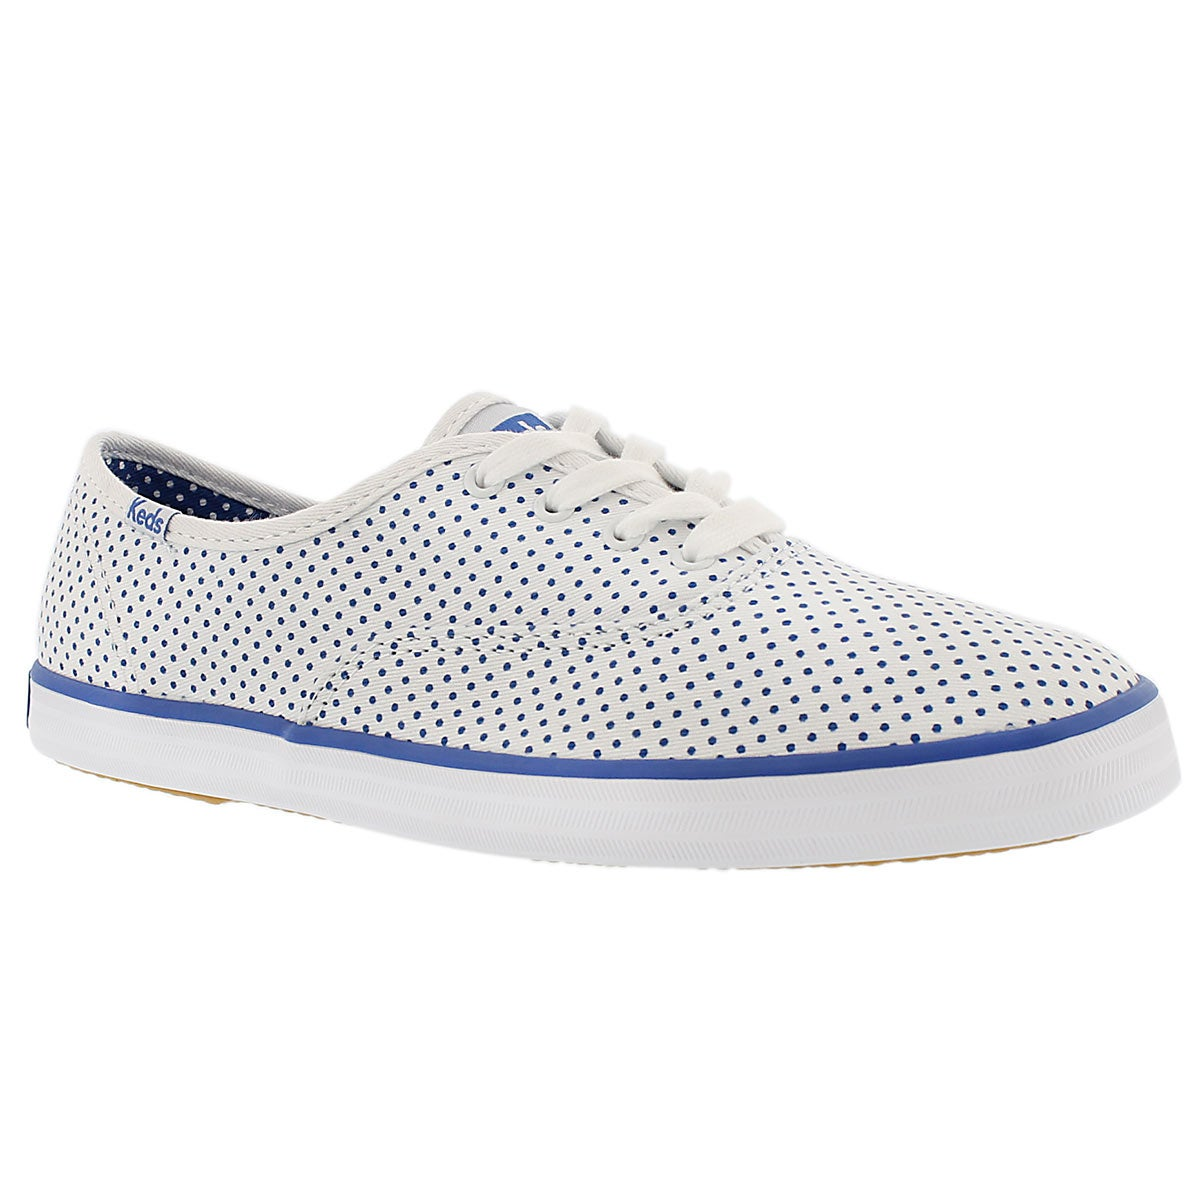 Women's CHAMPION MICRO DOT white/blue sneakers